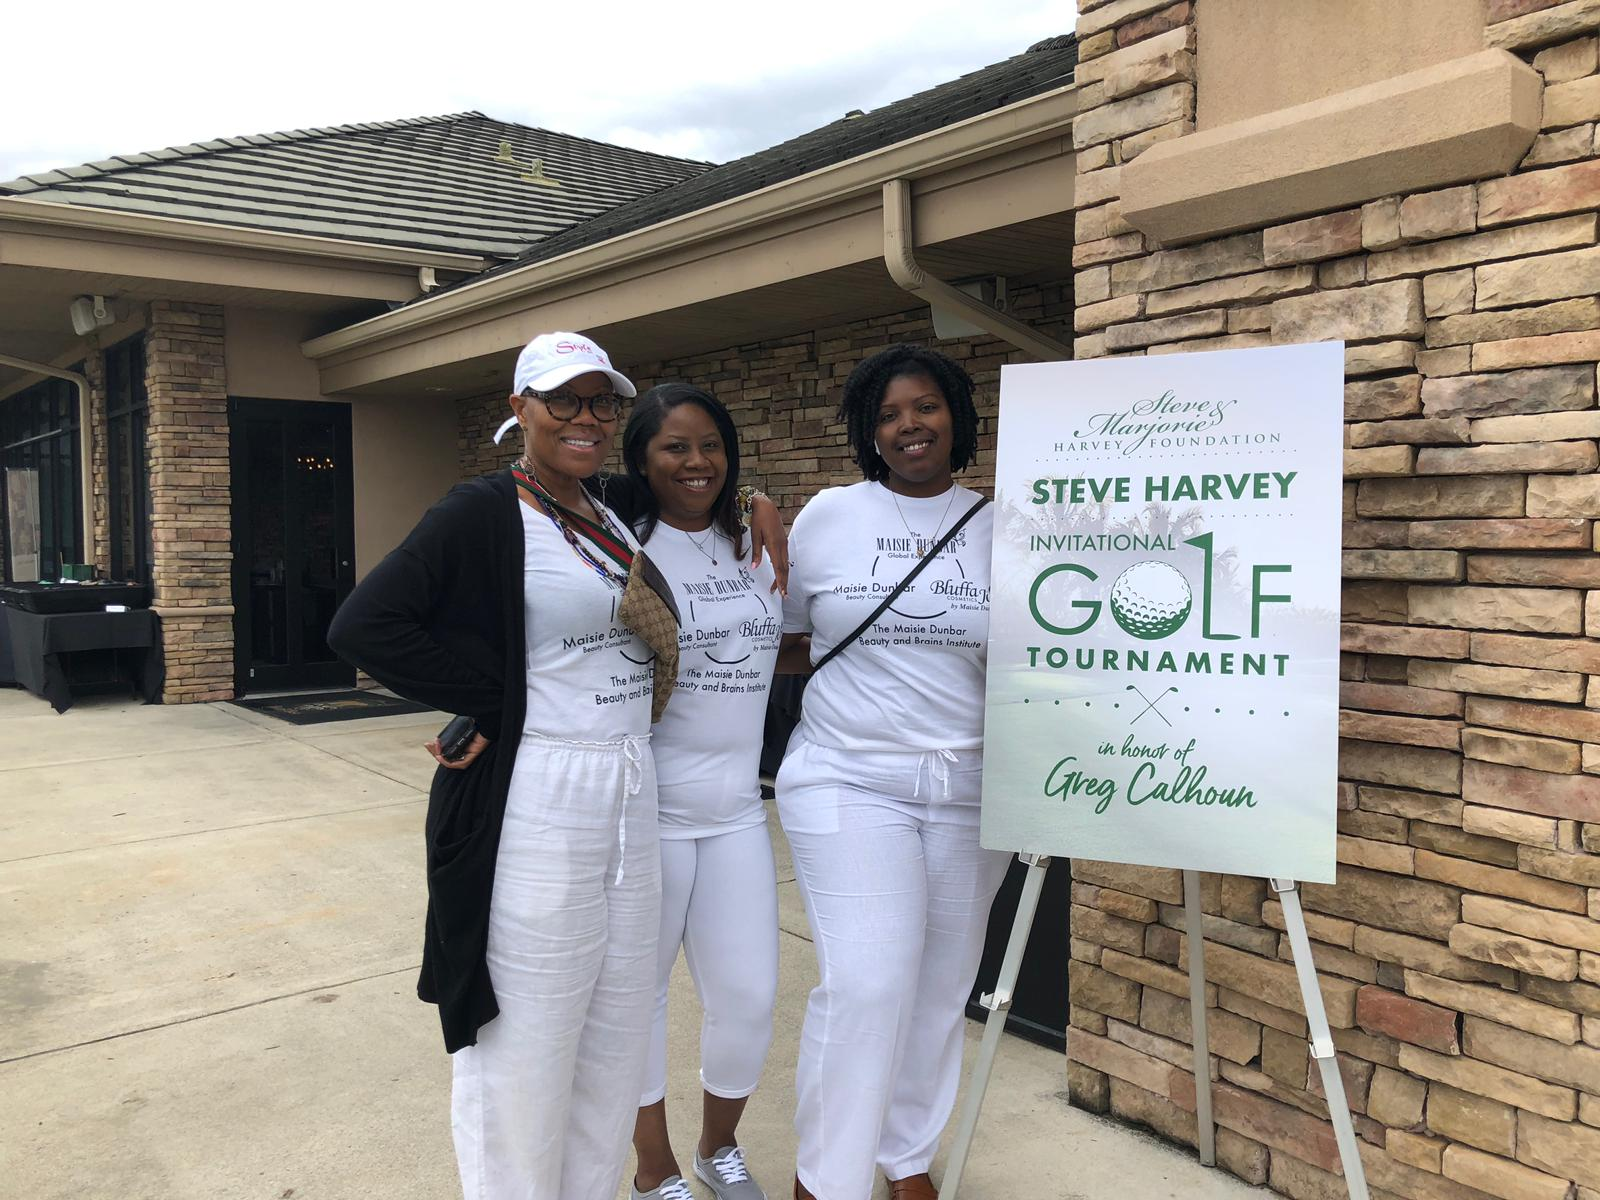 Steve Harvey Golf Tournament